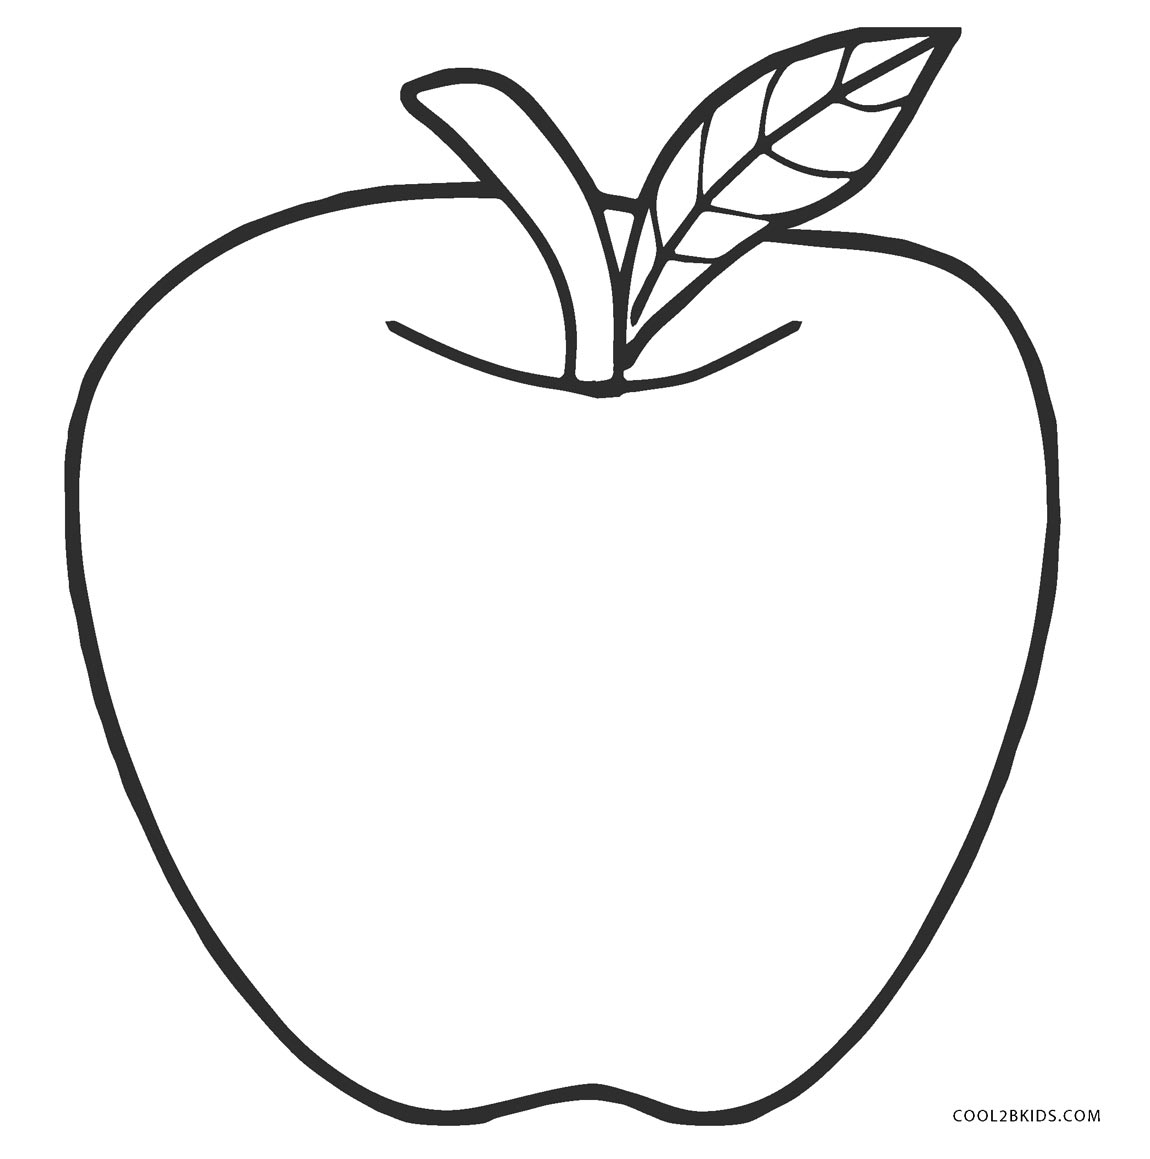 coloring worksheet apple free fruits and veggies coloring pages printable fruits worksheet apple coloring